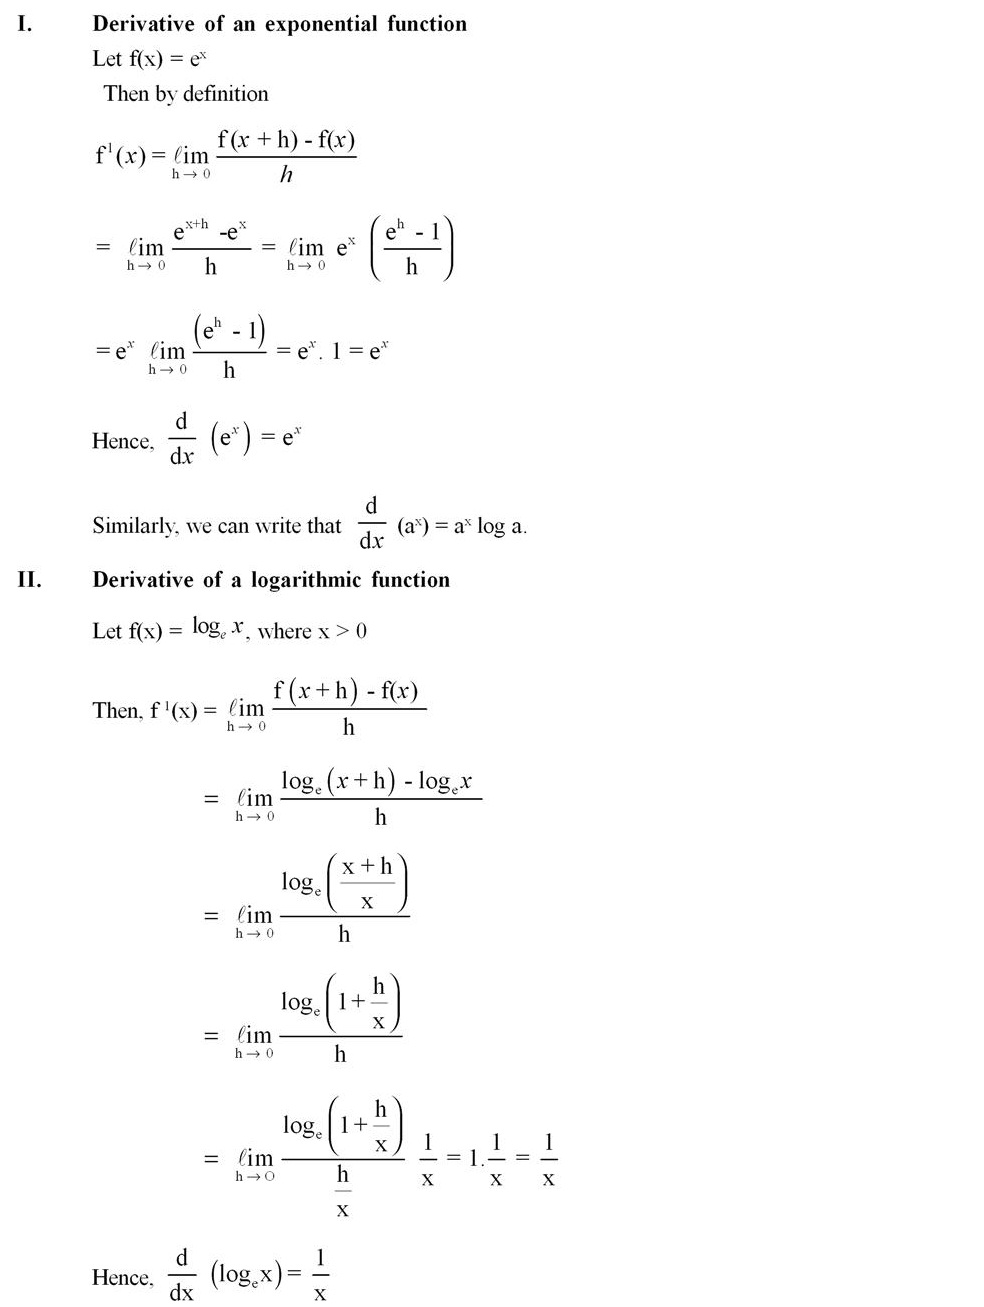 Worksheets Logarithmic Equations Worksheet With Answersclass11 cbse class xi xii supplementary textual material in mathematics